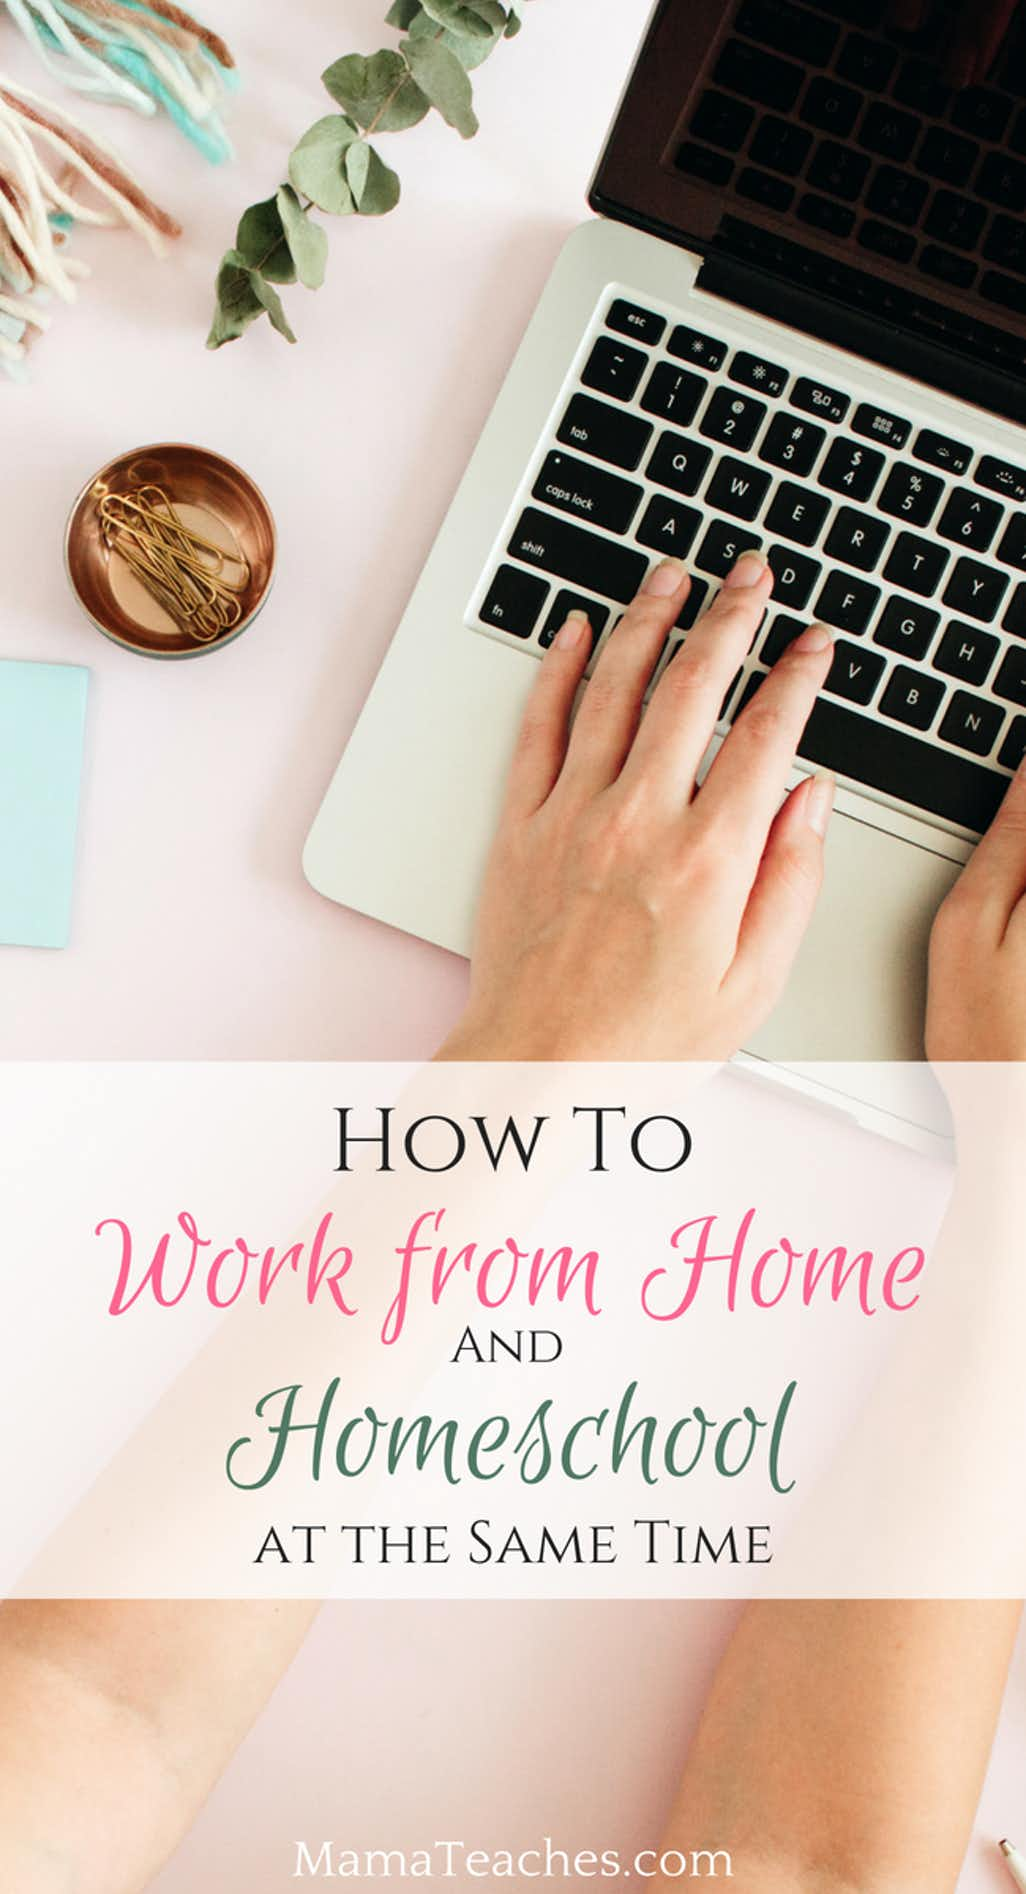 How to Work from Home When You Homeschool